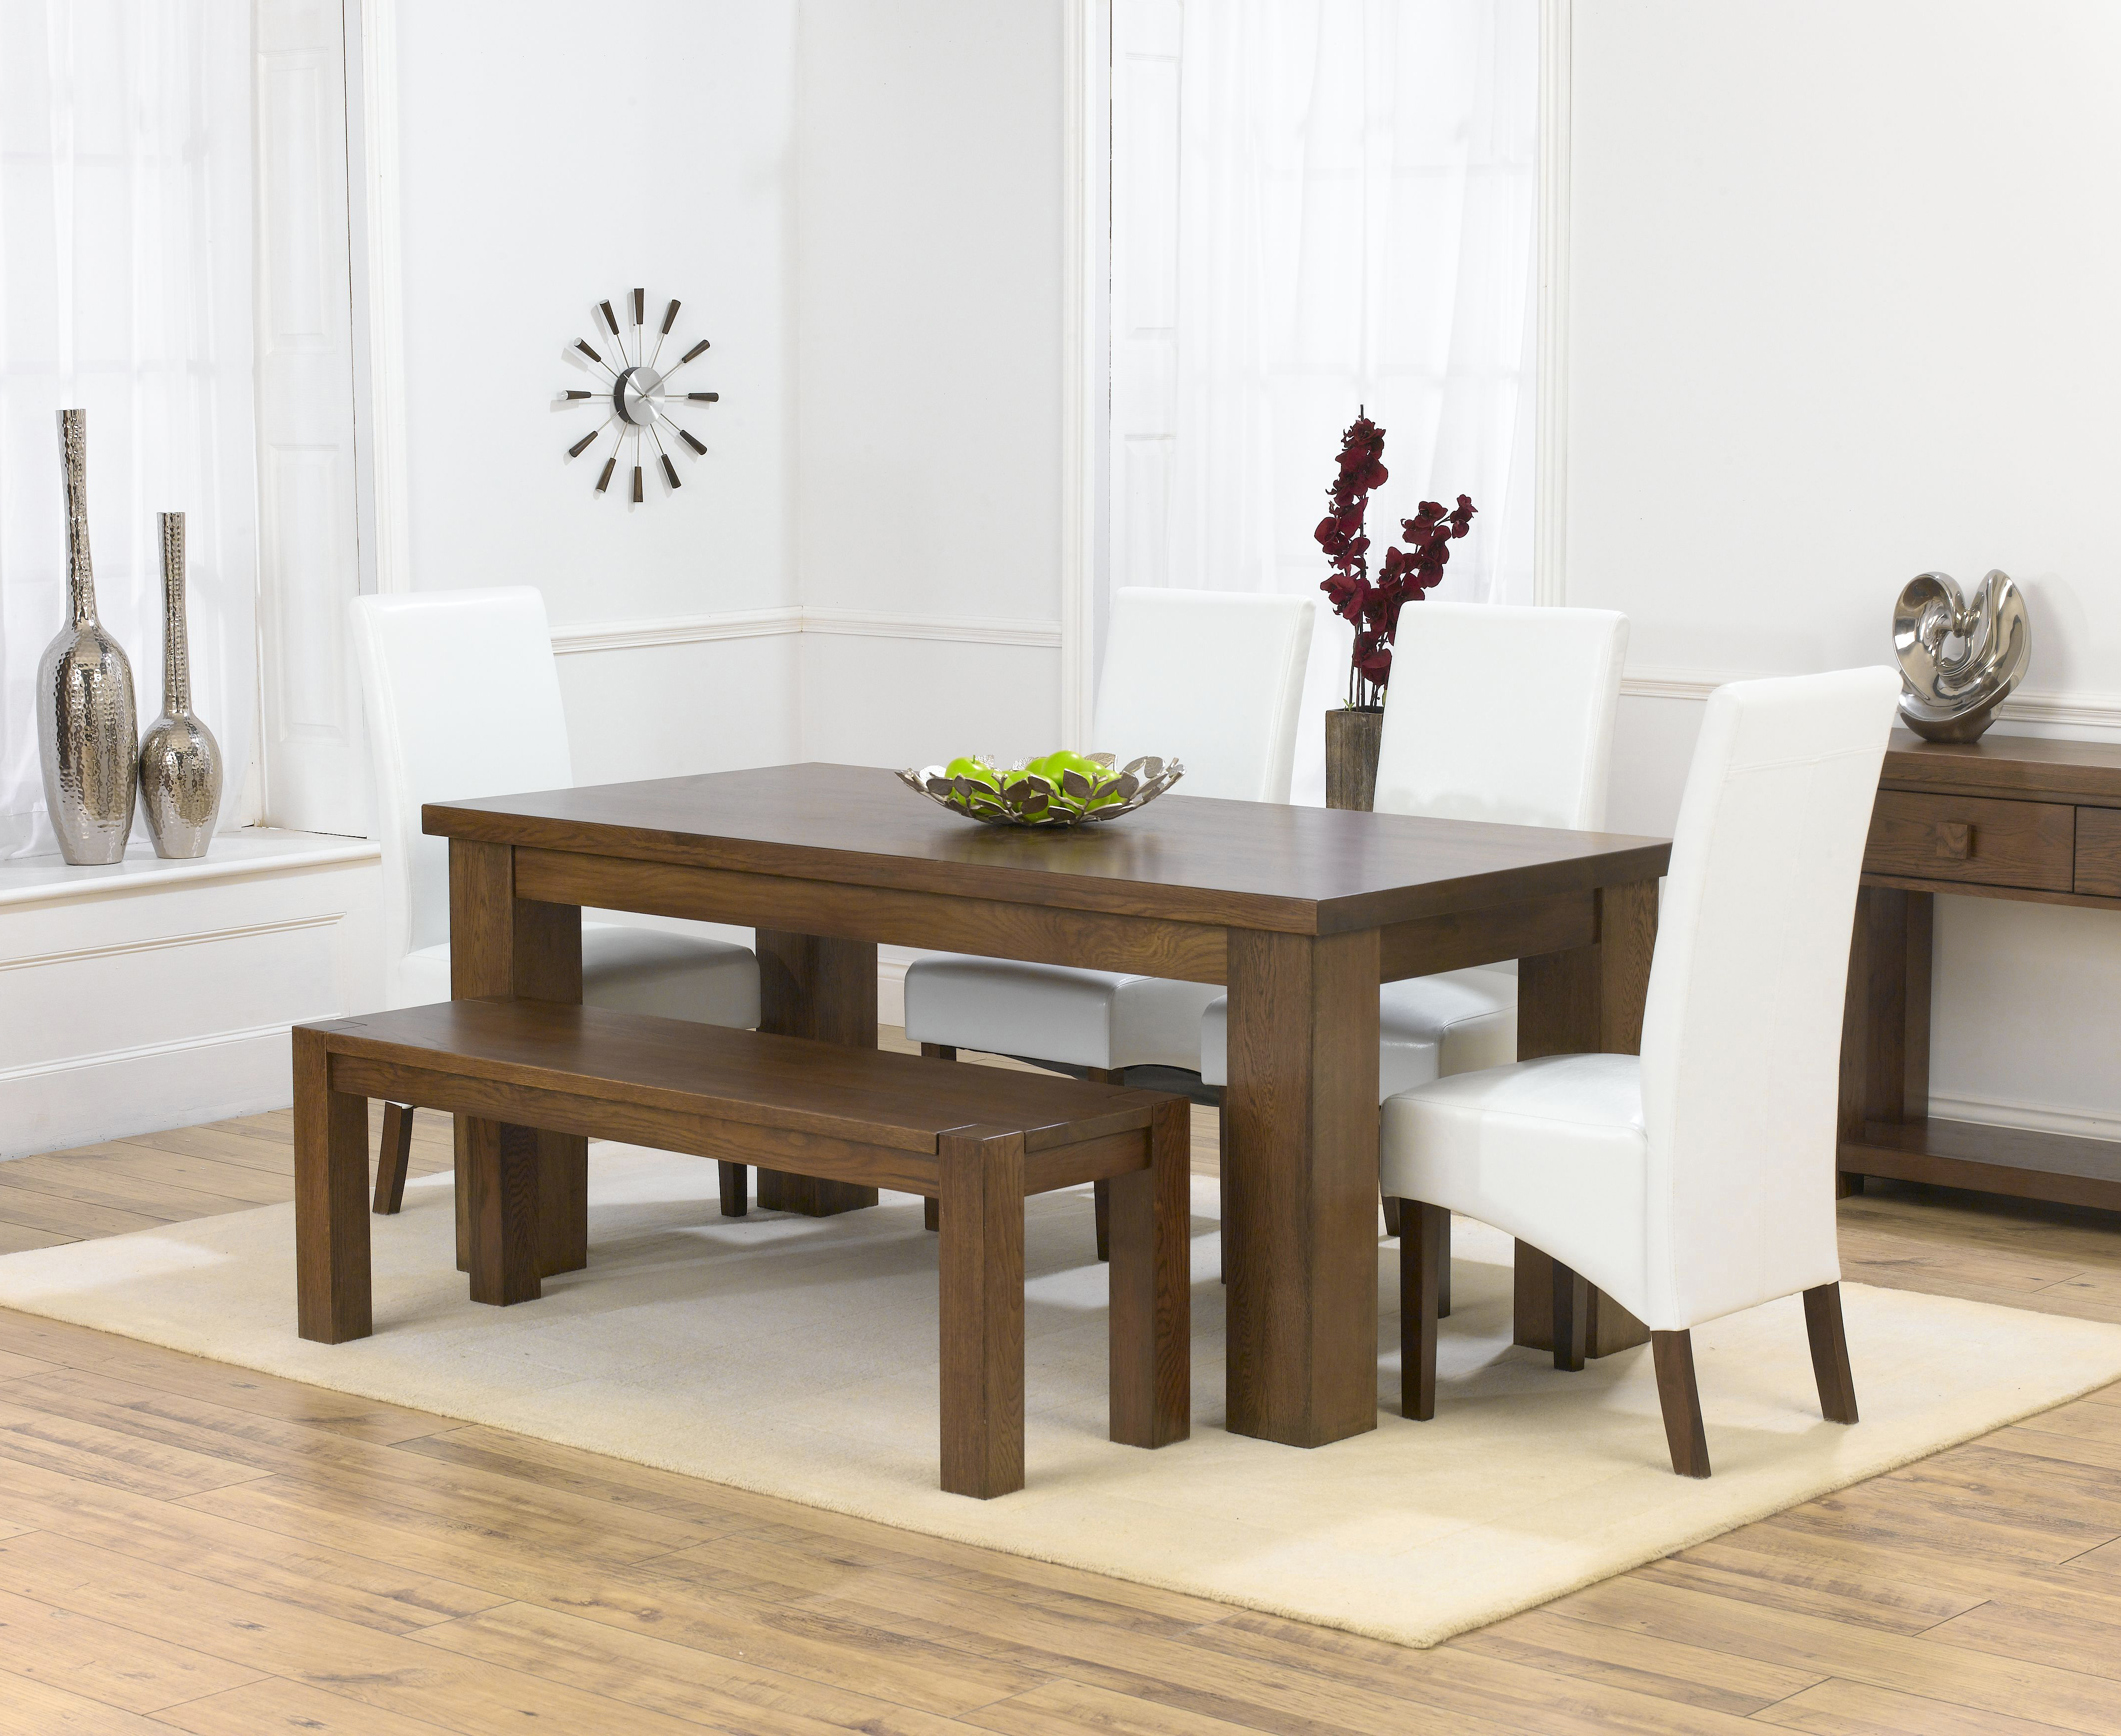 Oak Chairs For Kitchen Table Cheshire Dark Solid Oak Medium Dining Table Barcelona Bench And 4